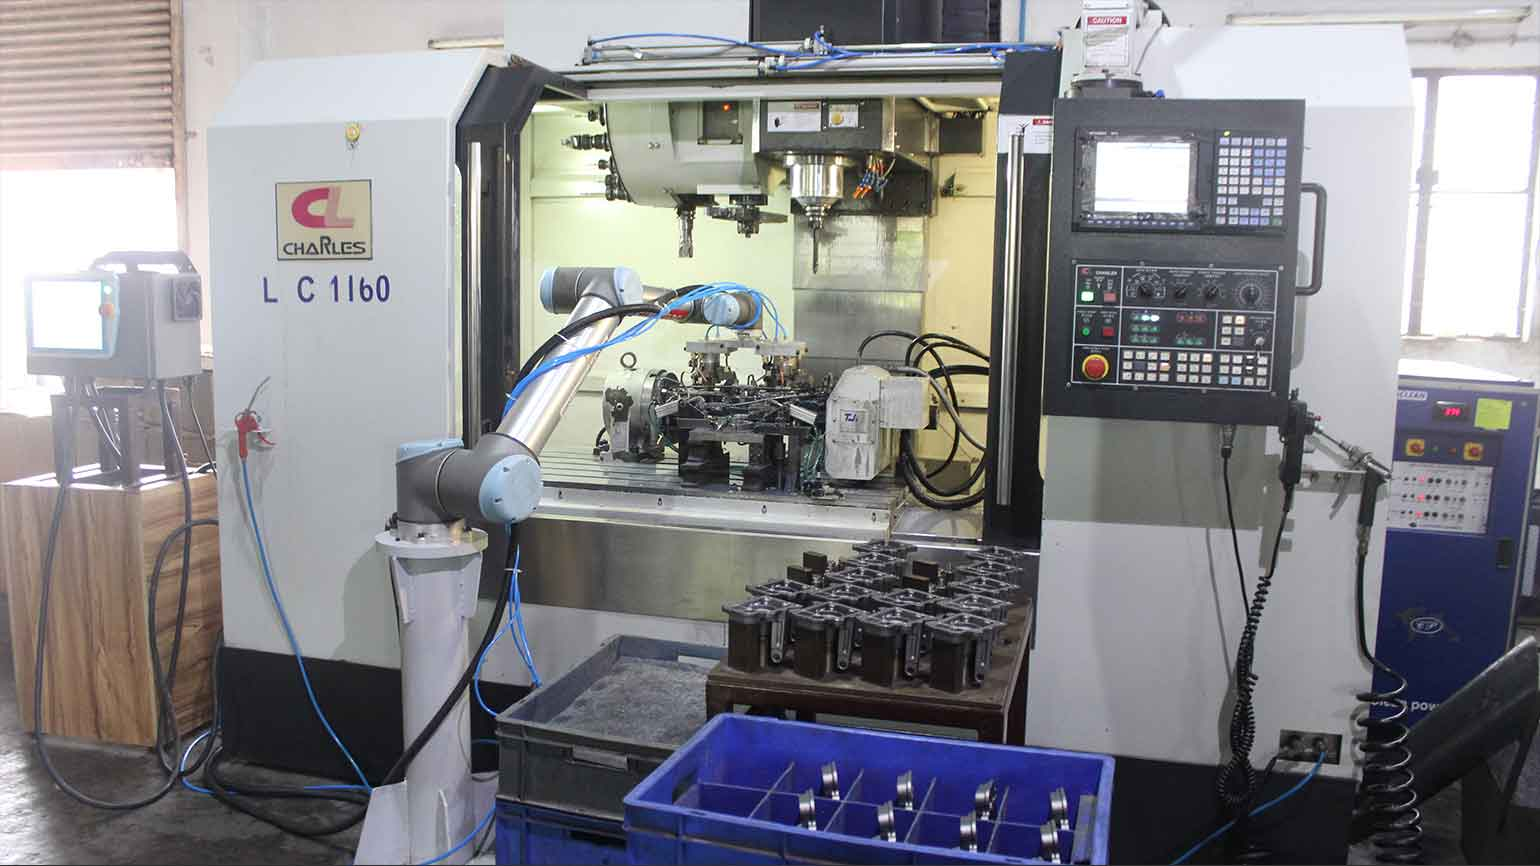 increase daily output by 75 thanks to a UR10 cobot in India